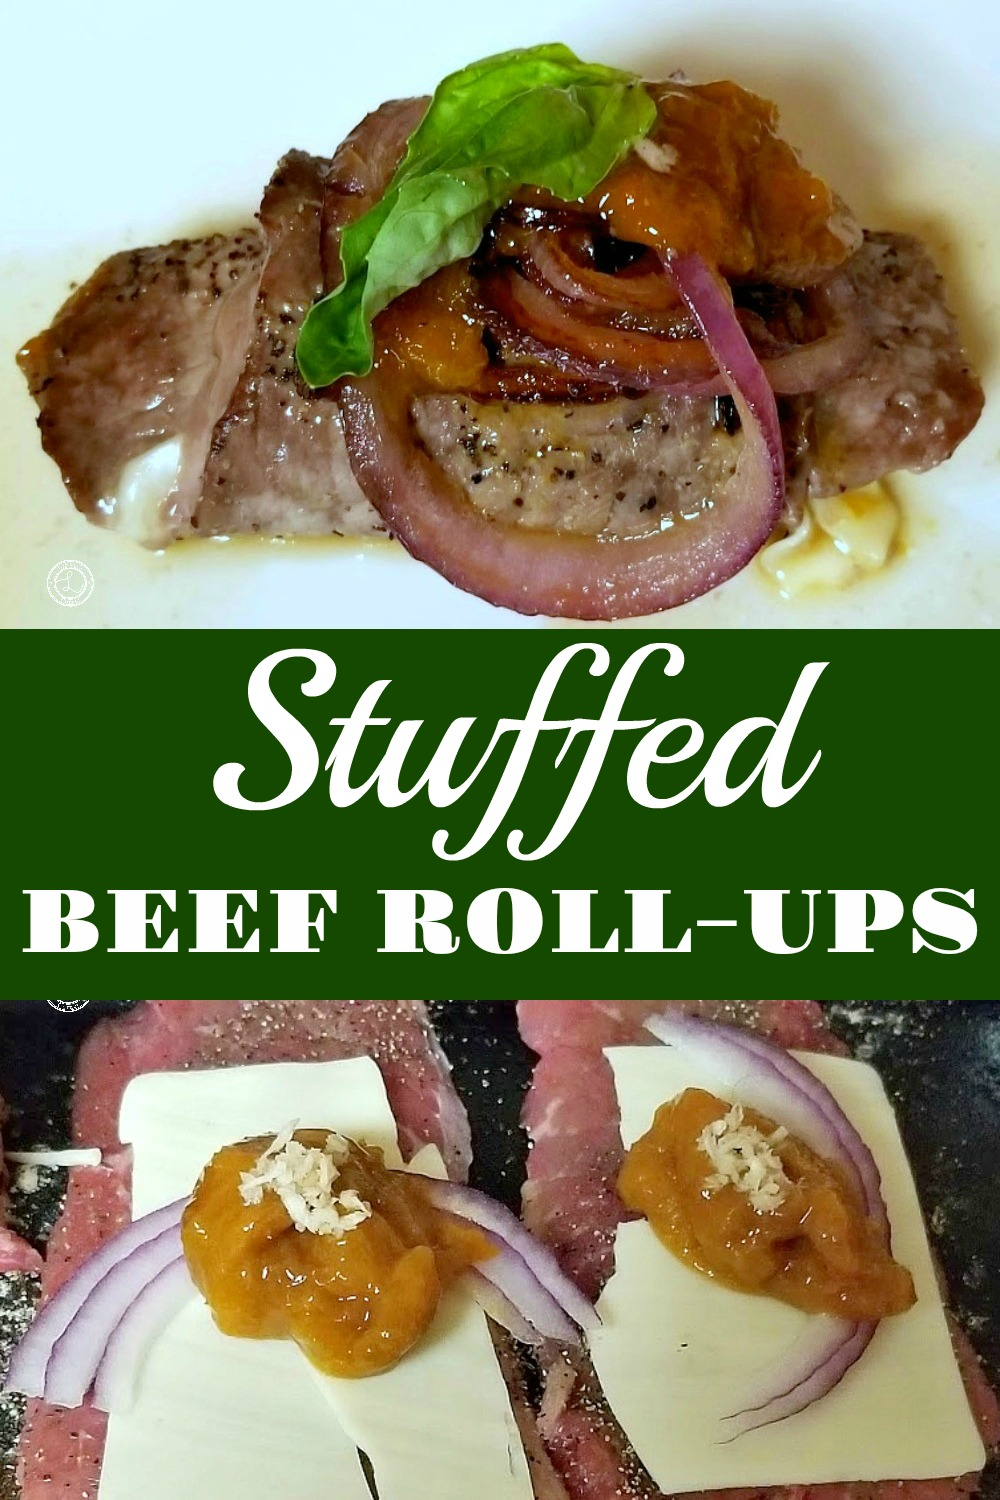 Two pictures. One of the cheese, red onion, apricot preserves, and horseradish. One close-up of the cooked beef roll ups.